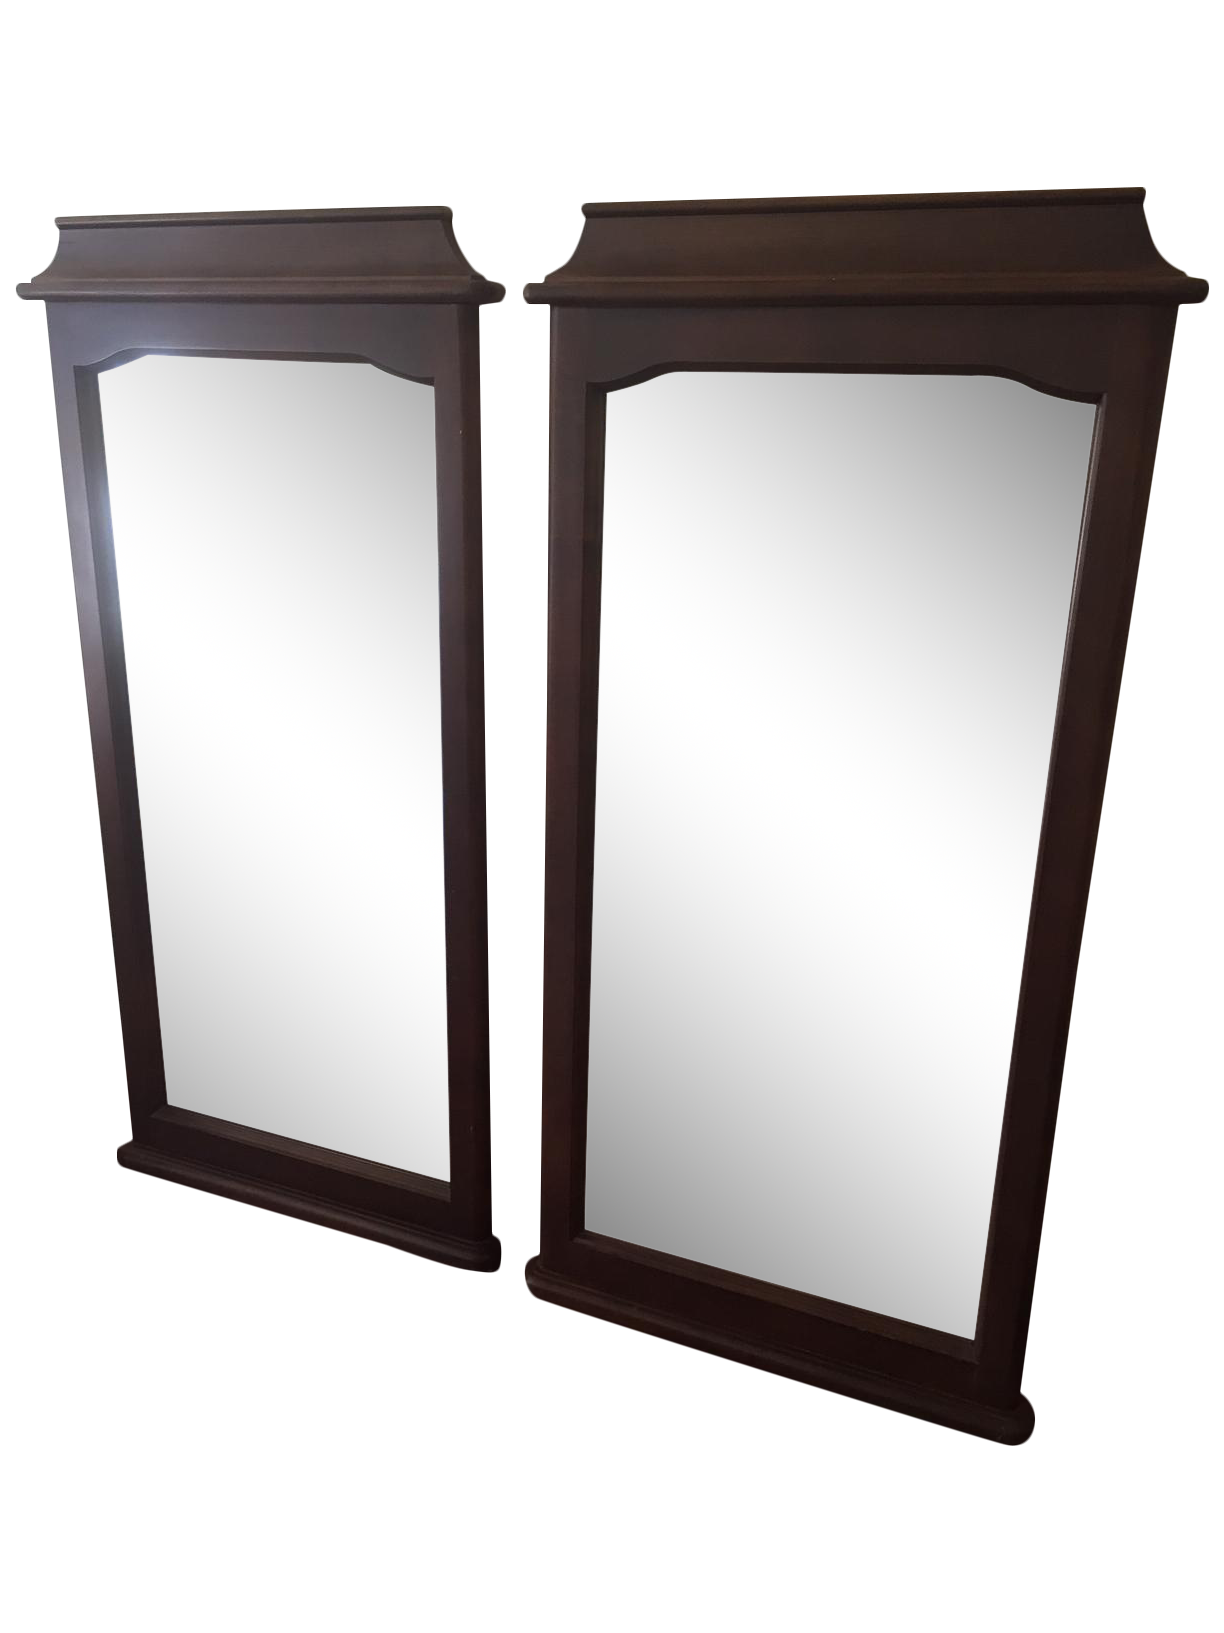 Asian style mirrors now